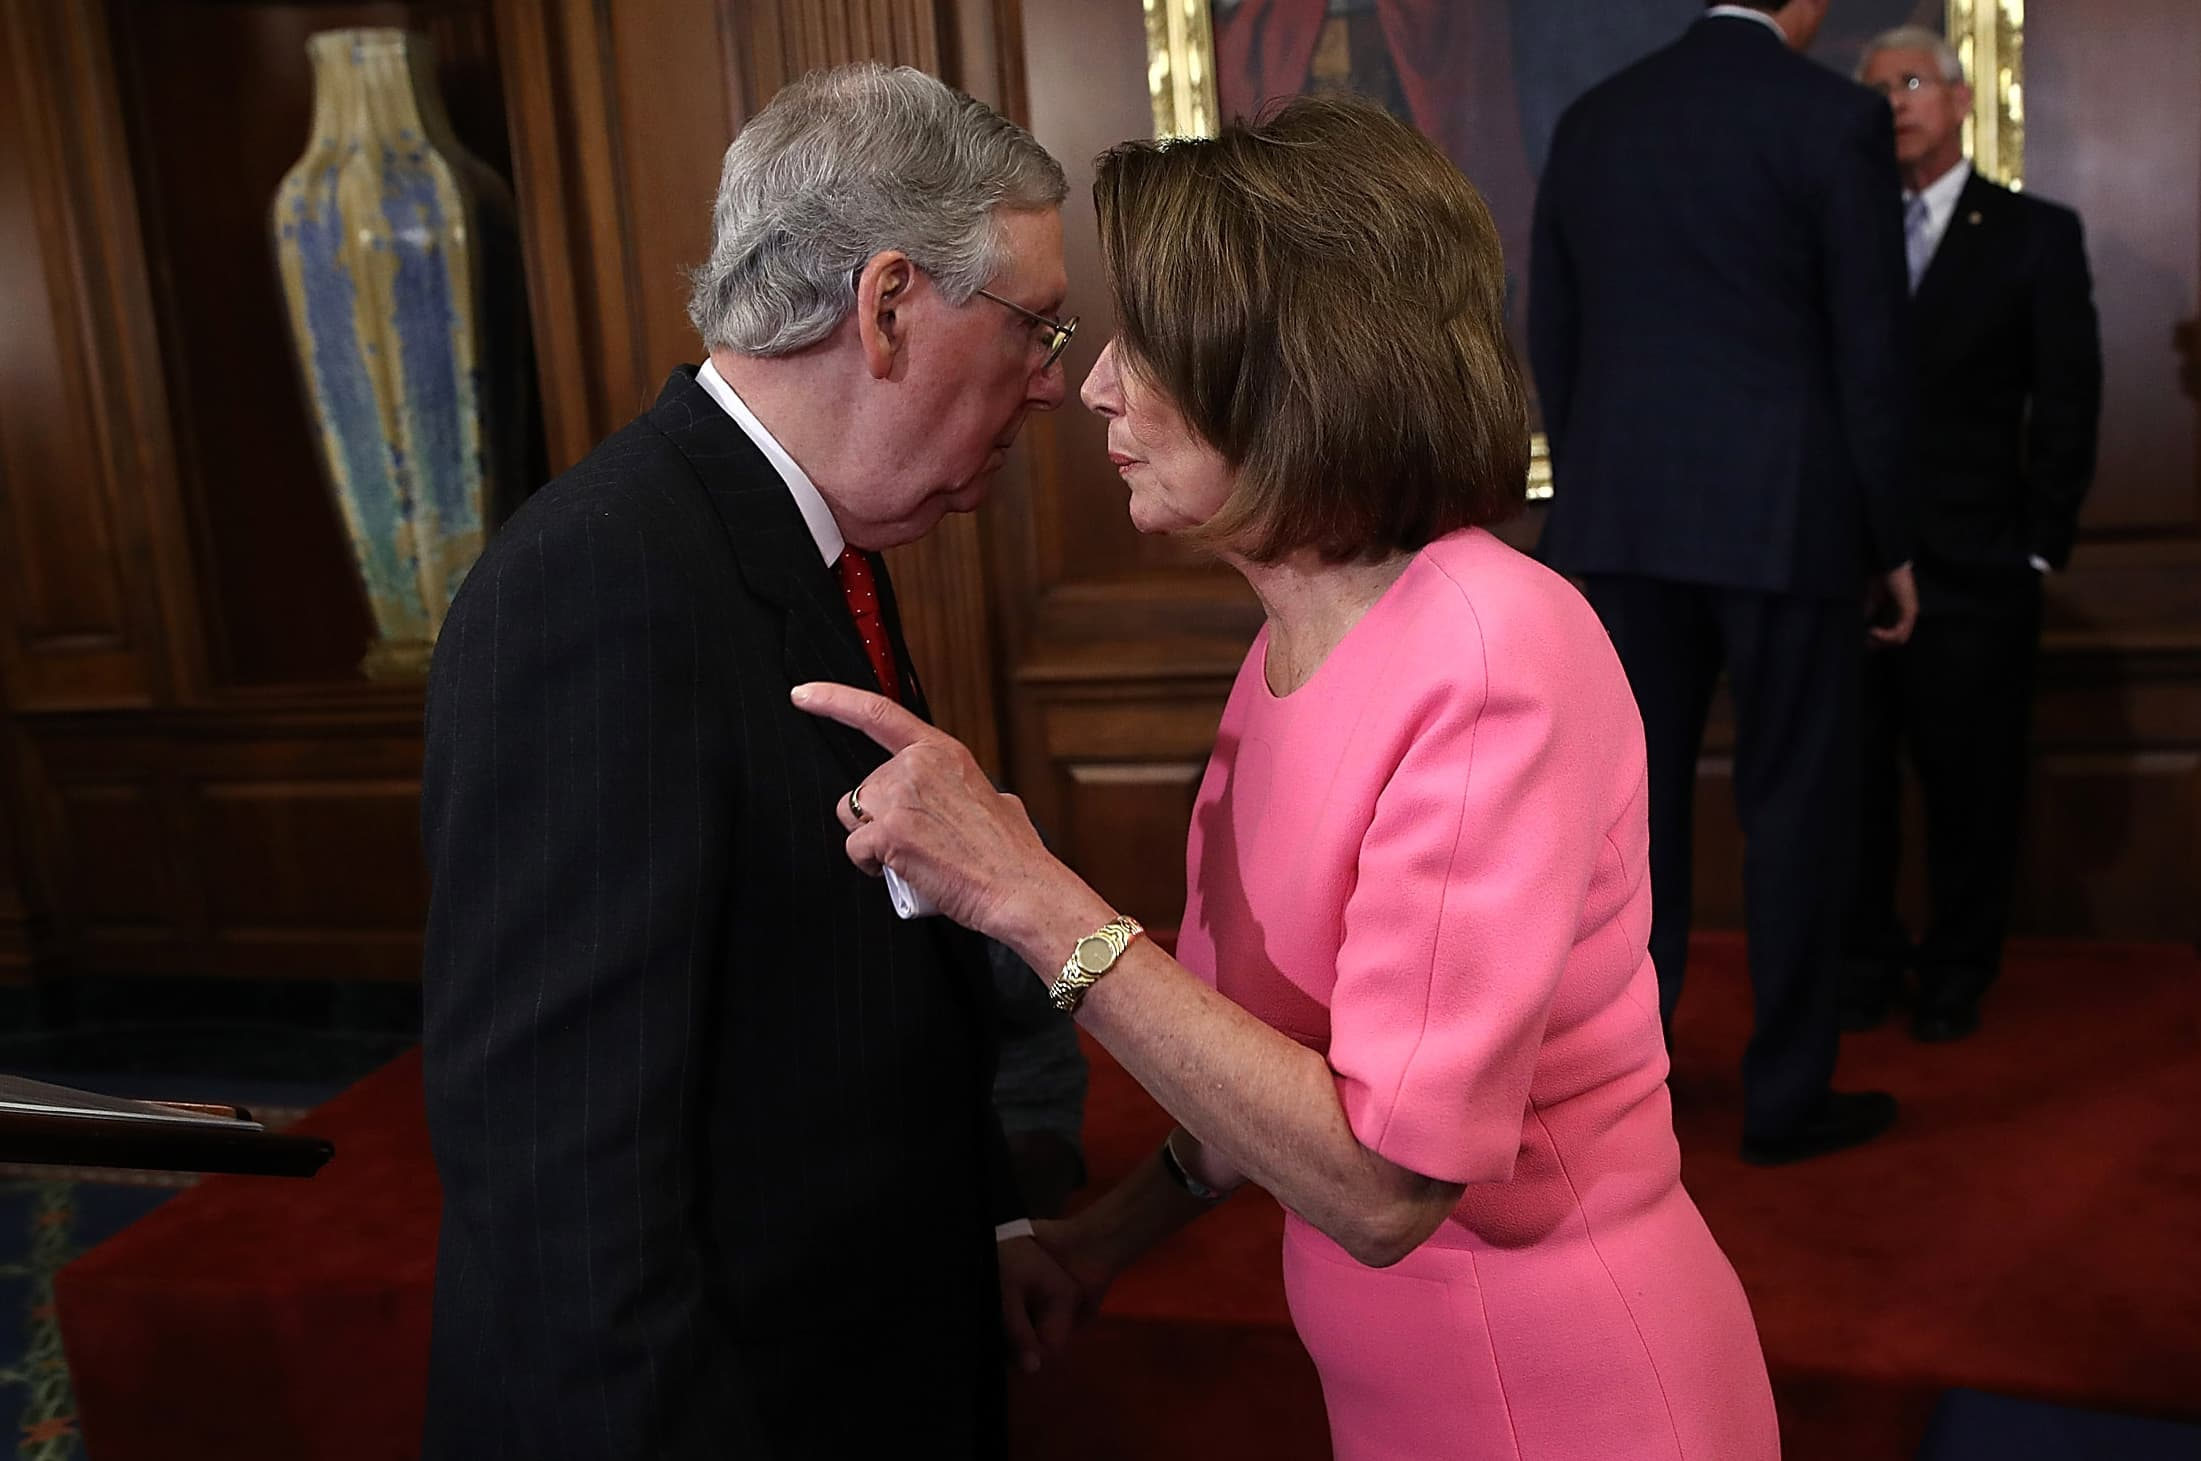 China accuses Pelosi and McConnell of inciting 'chaos' in Hong Kong